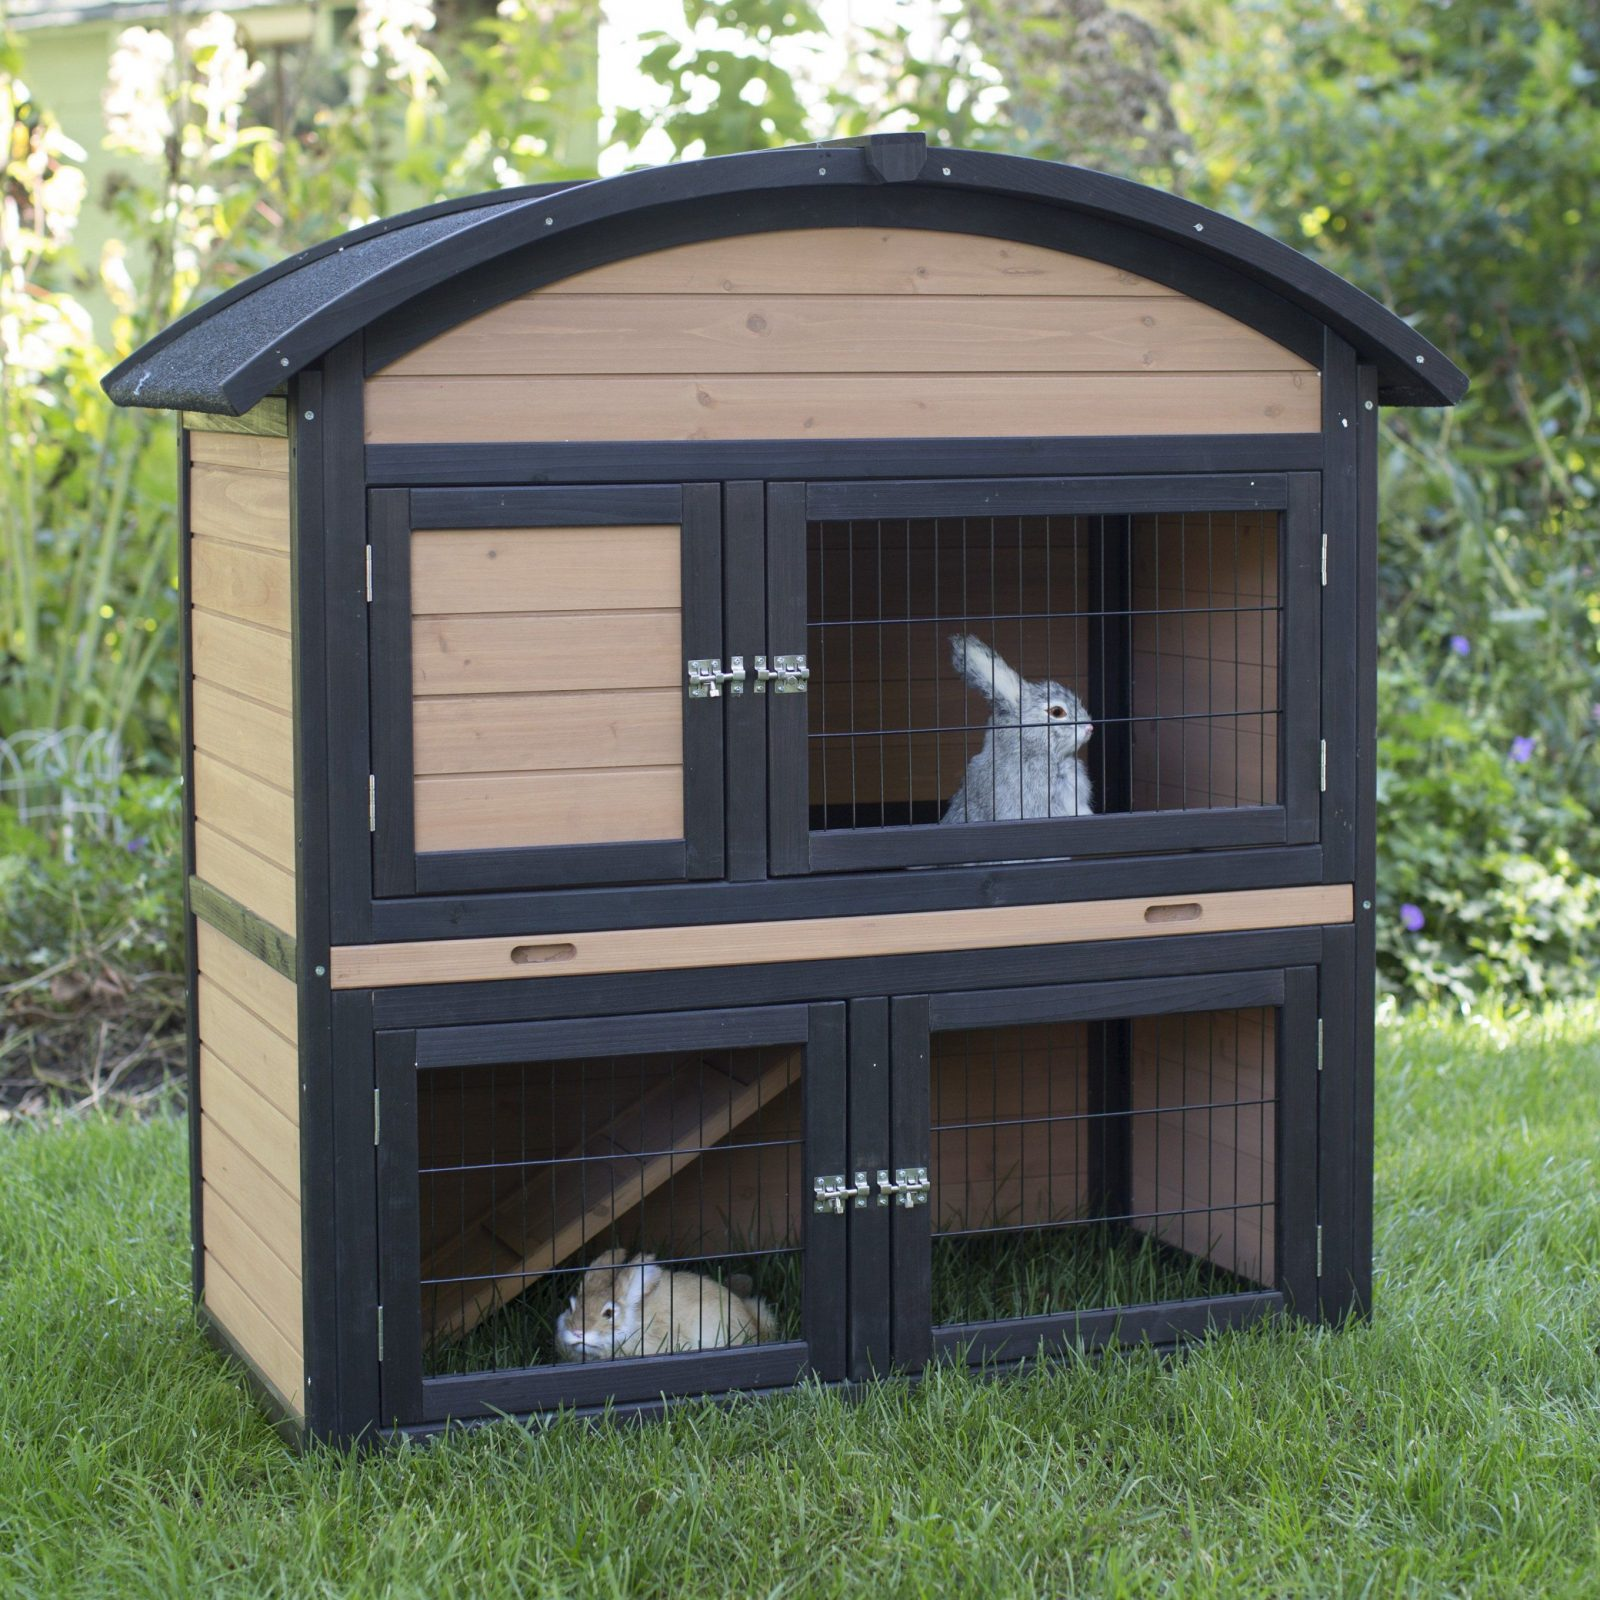 Boomer & George Tiered Outdoor Rabbit Hutch With Run  Hayneedle von Boomer And George Rabbit Hutch Bild